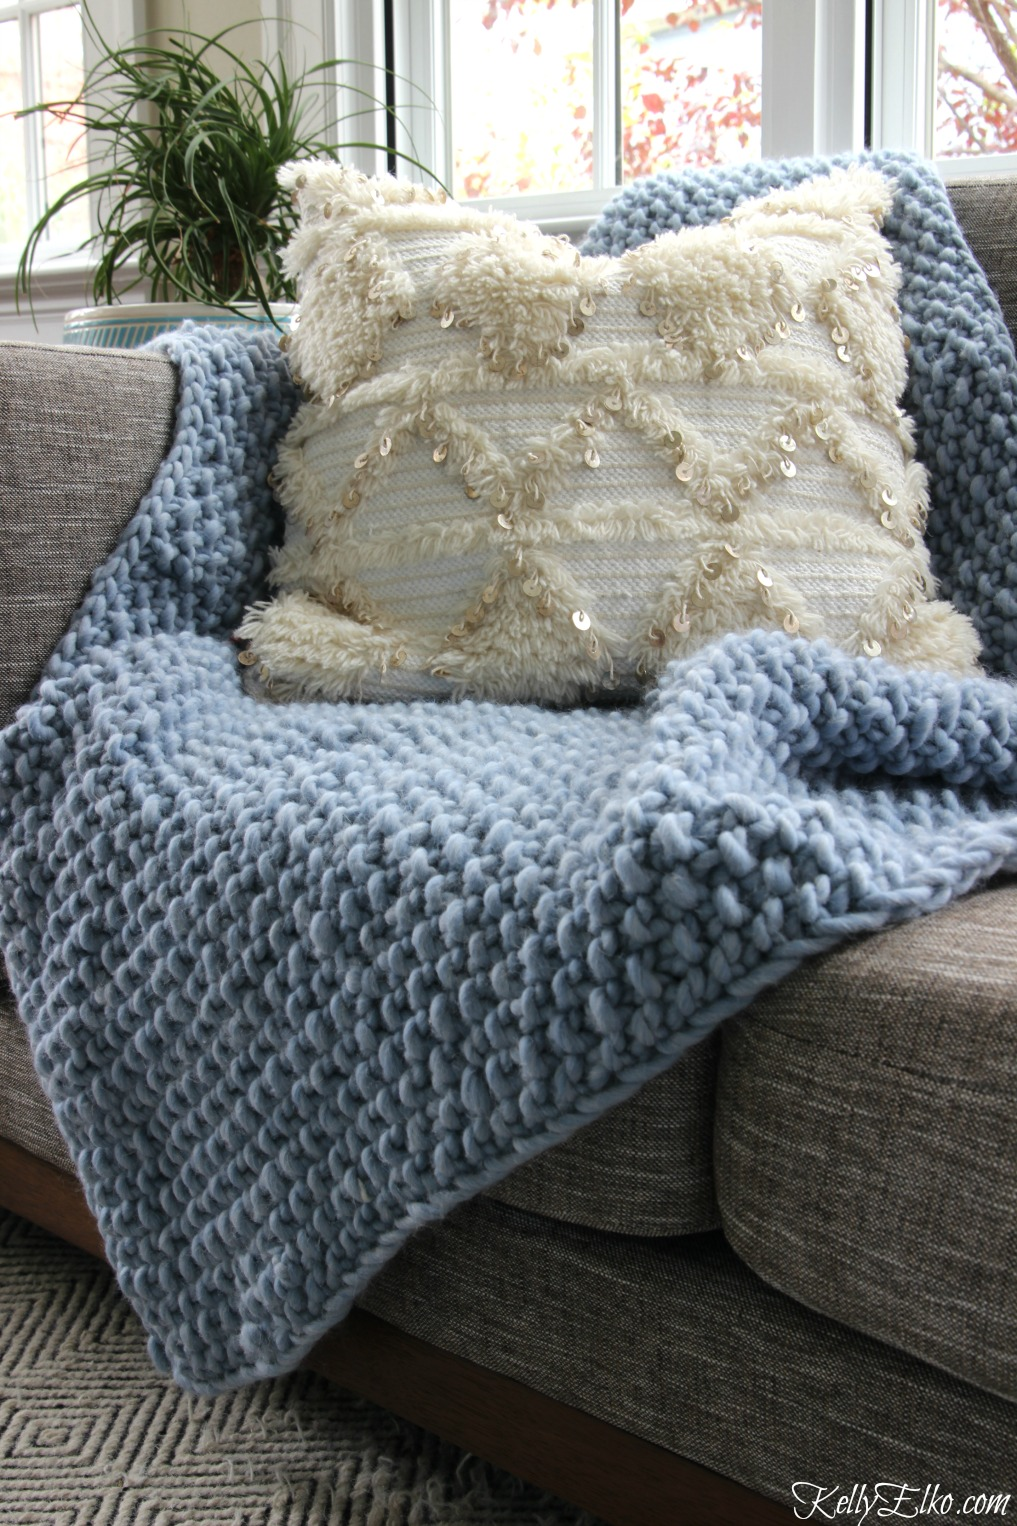 Easy Knit Blanket How To : So You Think You Cant Knit and How I Learned - Kelly Elko